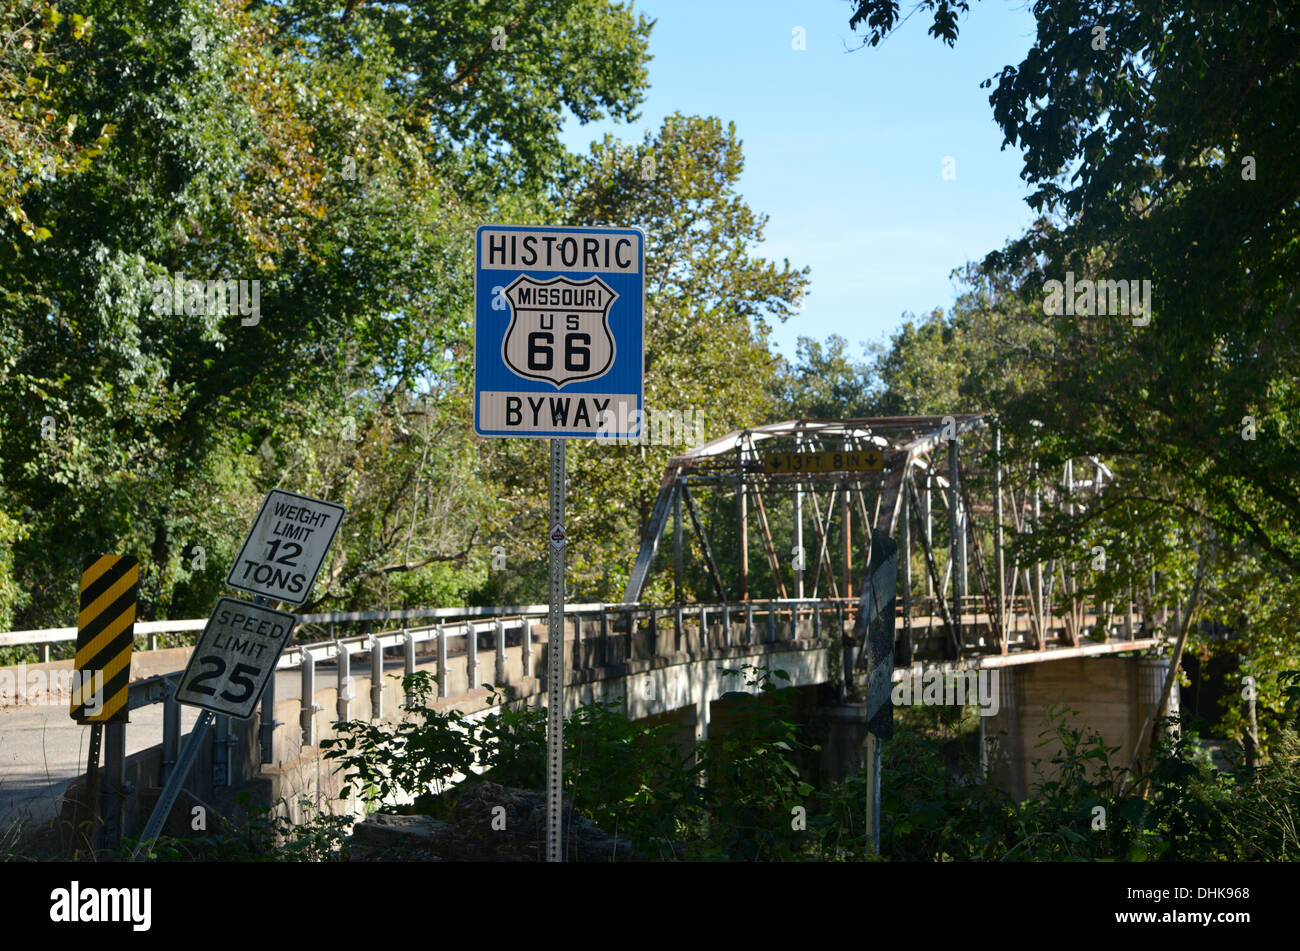 Route 66 road sign by an old truss girder box bridge crosses a river in rural Missouri, USA Stock Photo